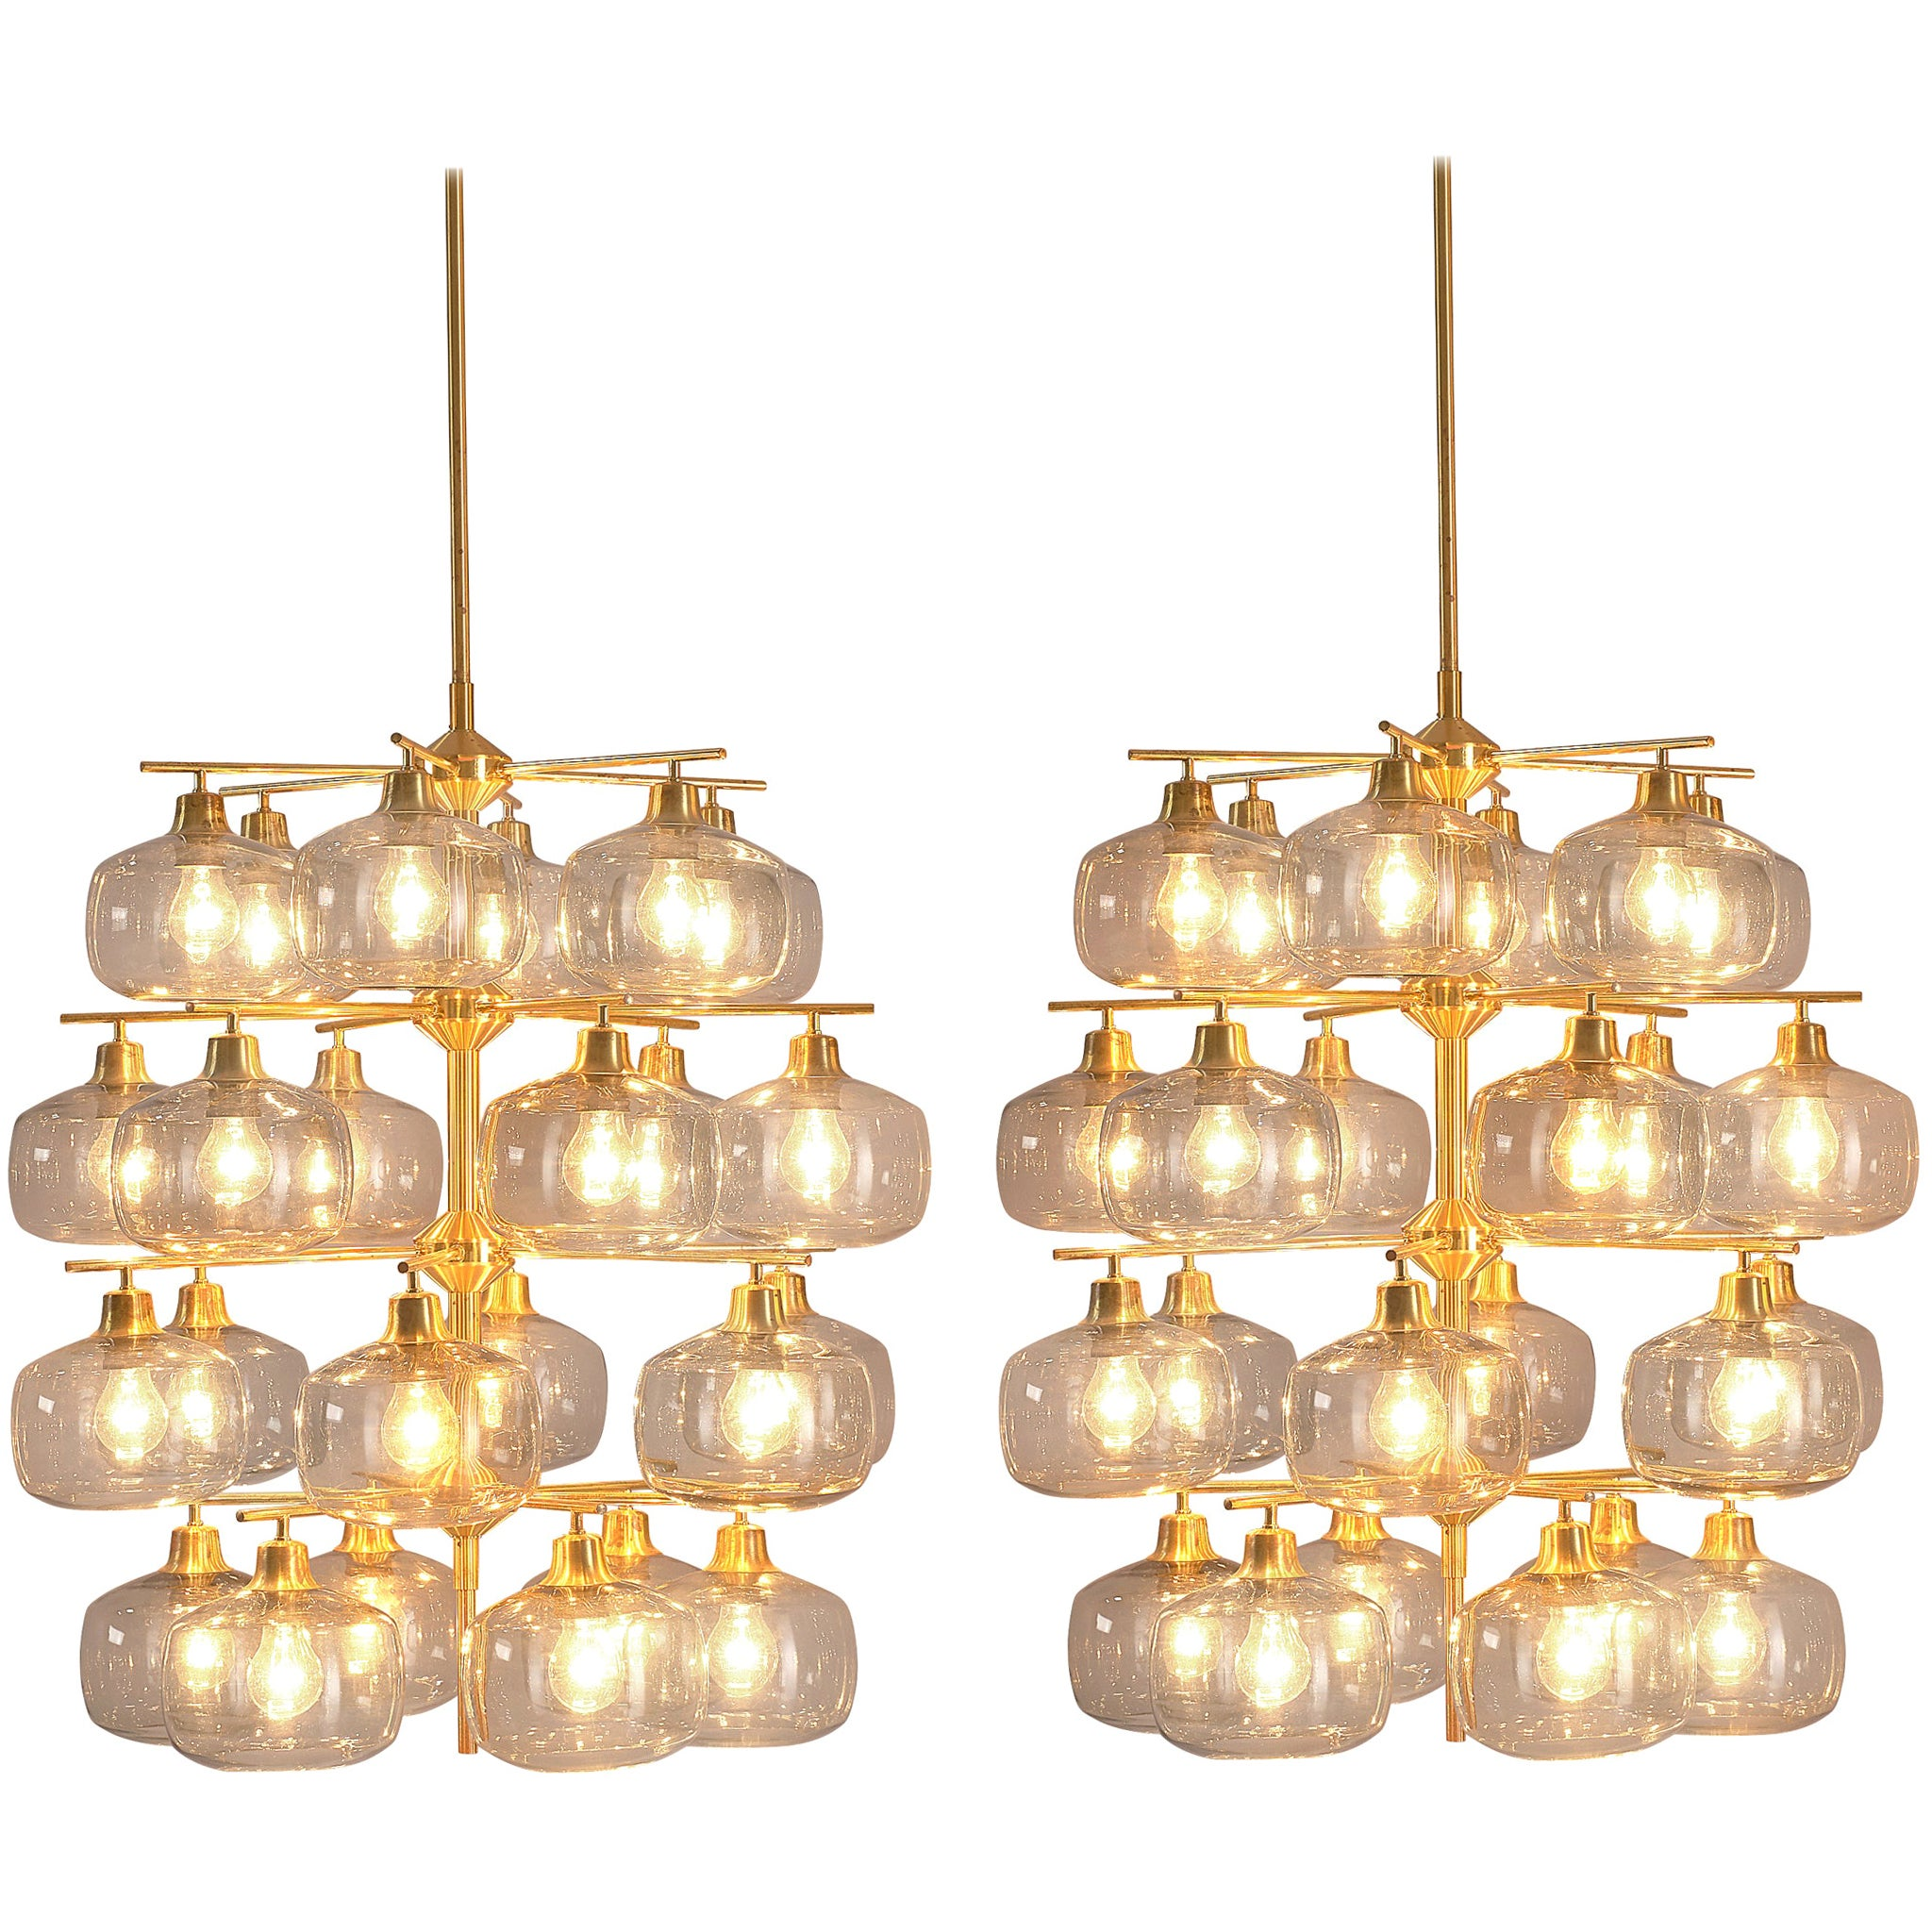 Pair of Swedish Chandeliers by Holger Johansson, 1952